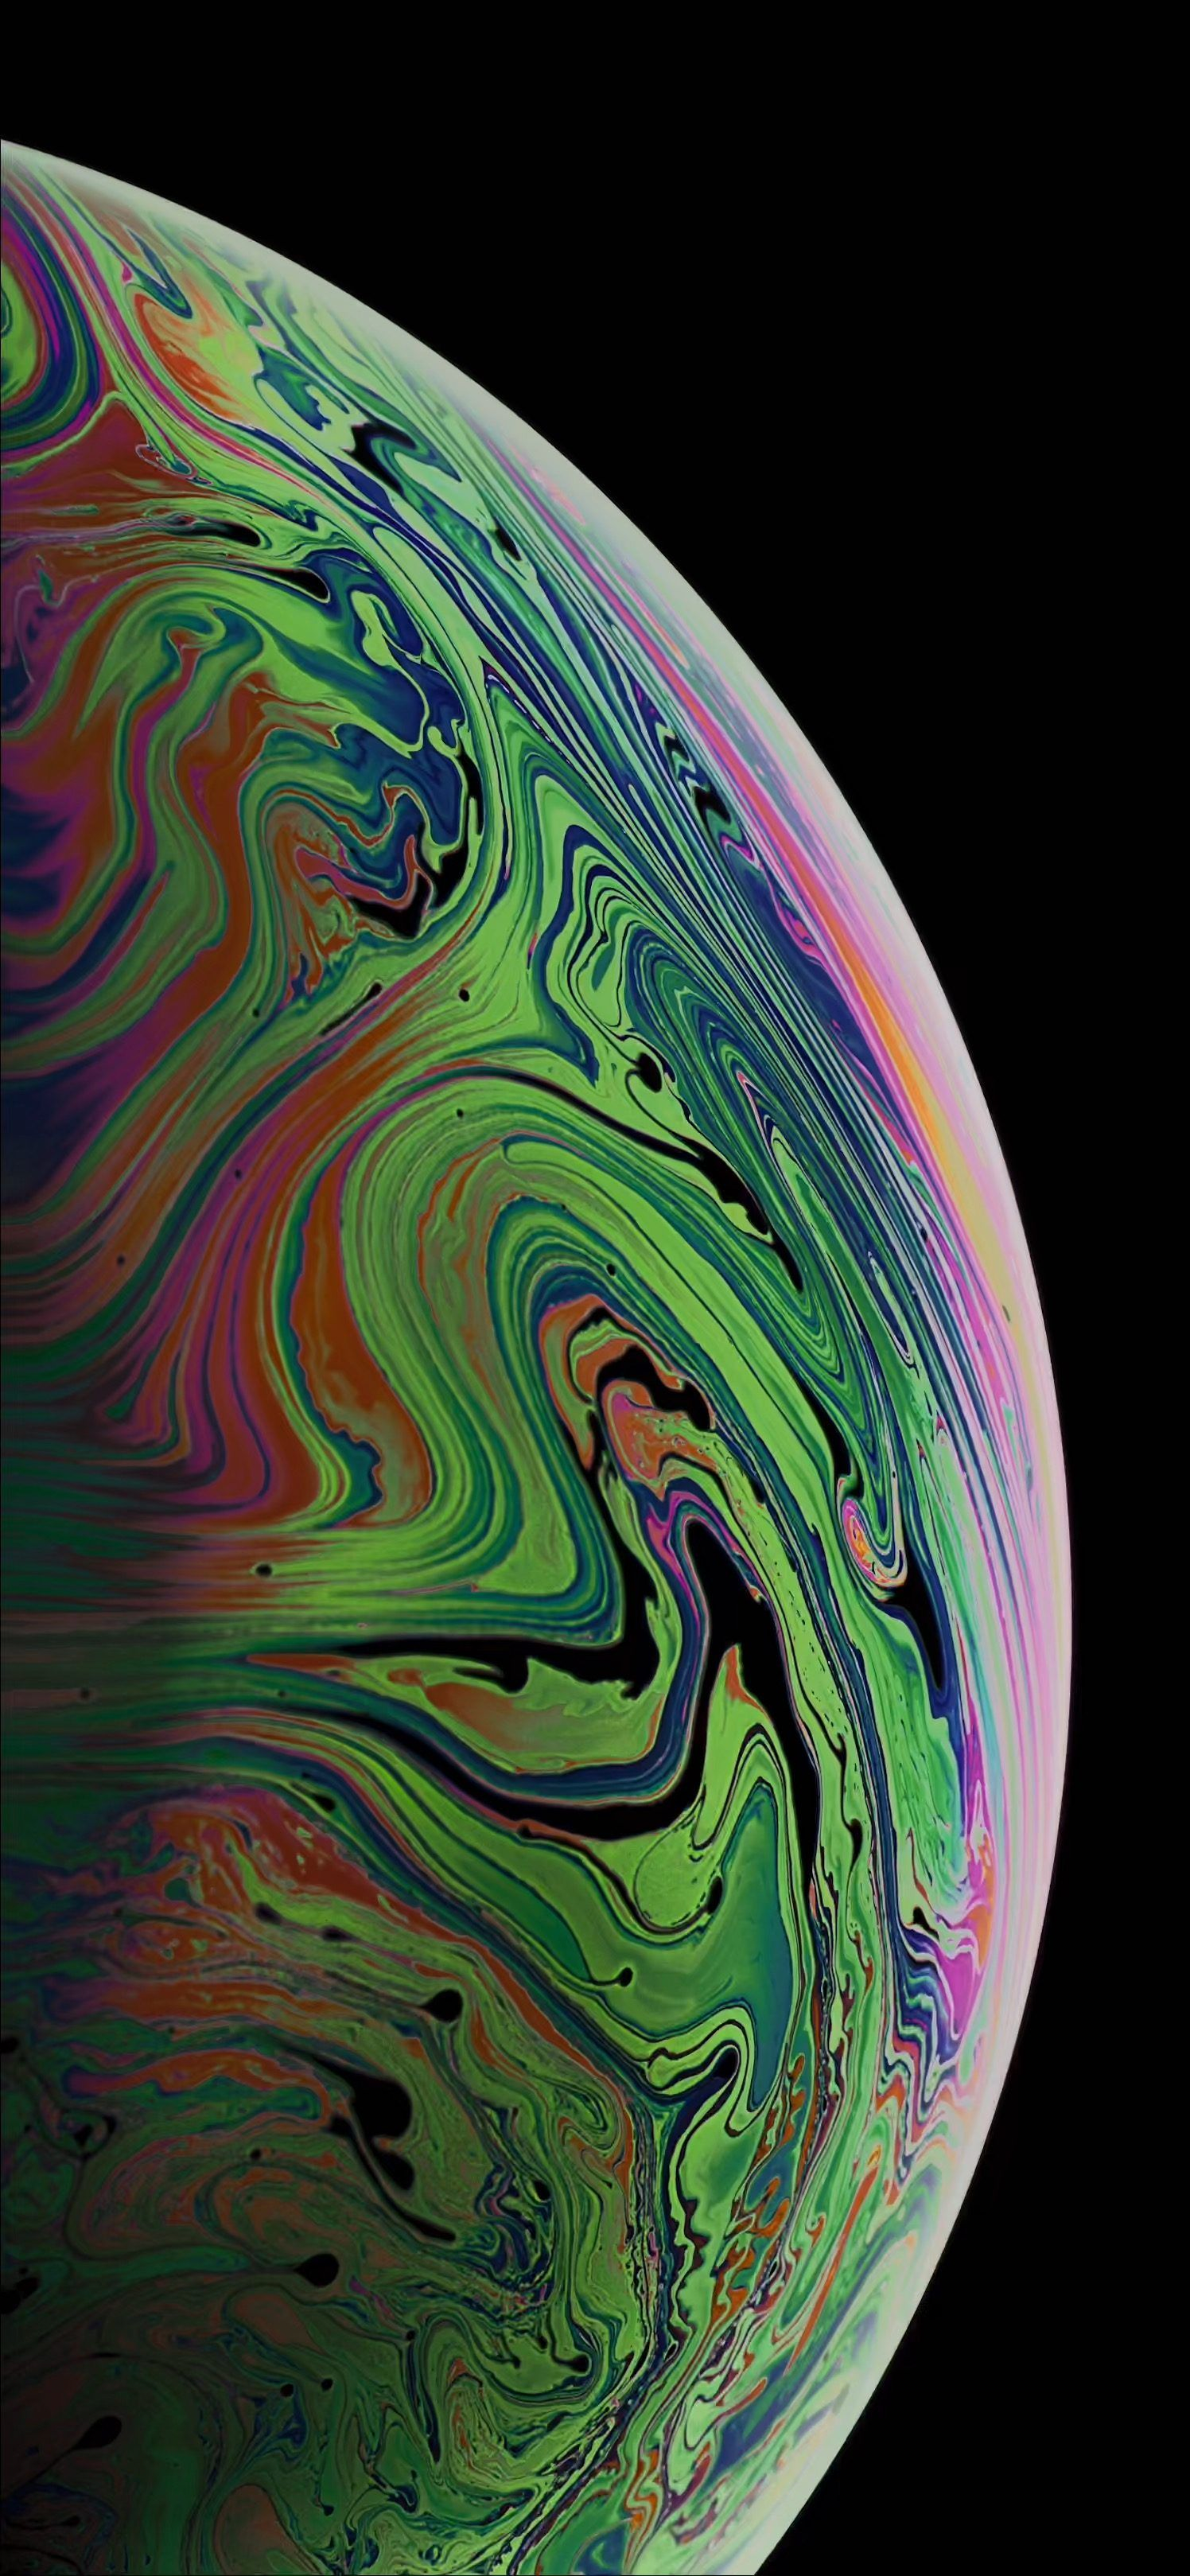 1496x3238 Download the new iPhone Xs and iPhone Xs Max wallpapers ...